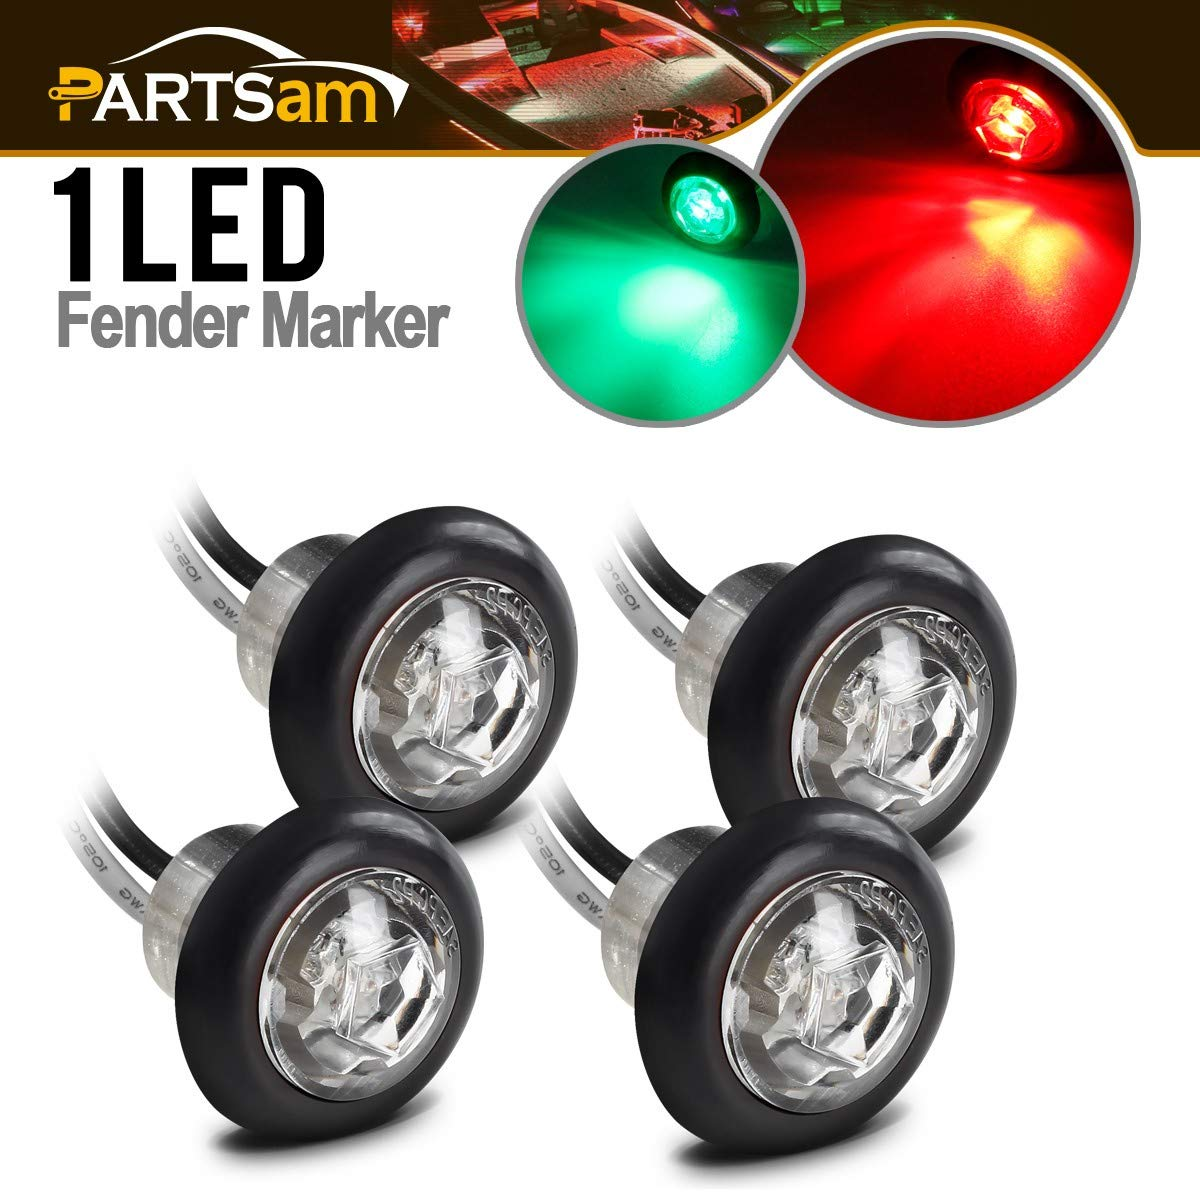 Partsam 4 Pcs 3/4'' Inch Mount Clear Lens LED Clearance Bullet Marker lights Sidelights, Sealed Round Mini Marine Boat RV LED Courtesy Lights Garden Accent Deck Lamp(2Red+2Green)